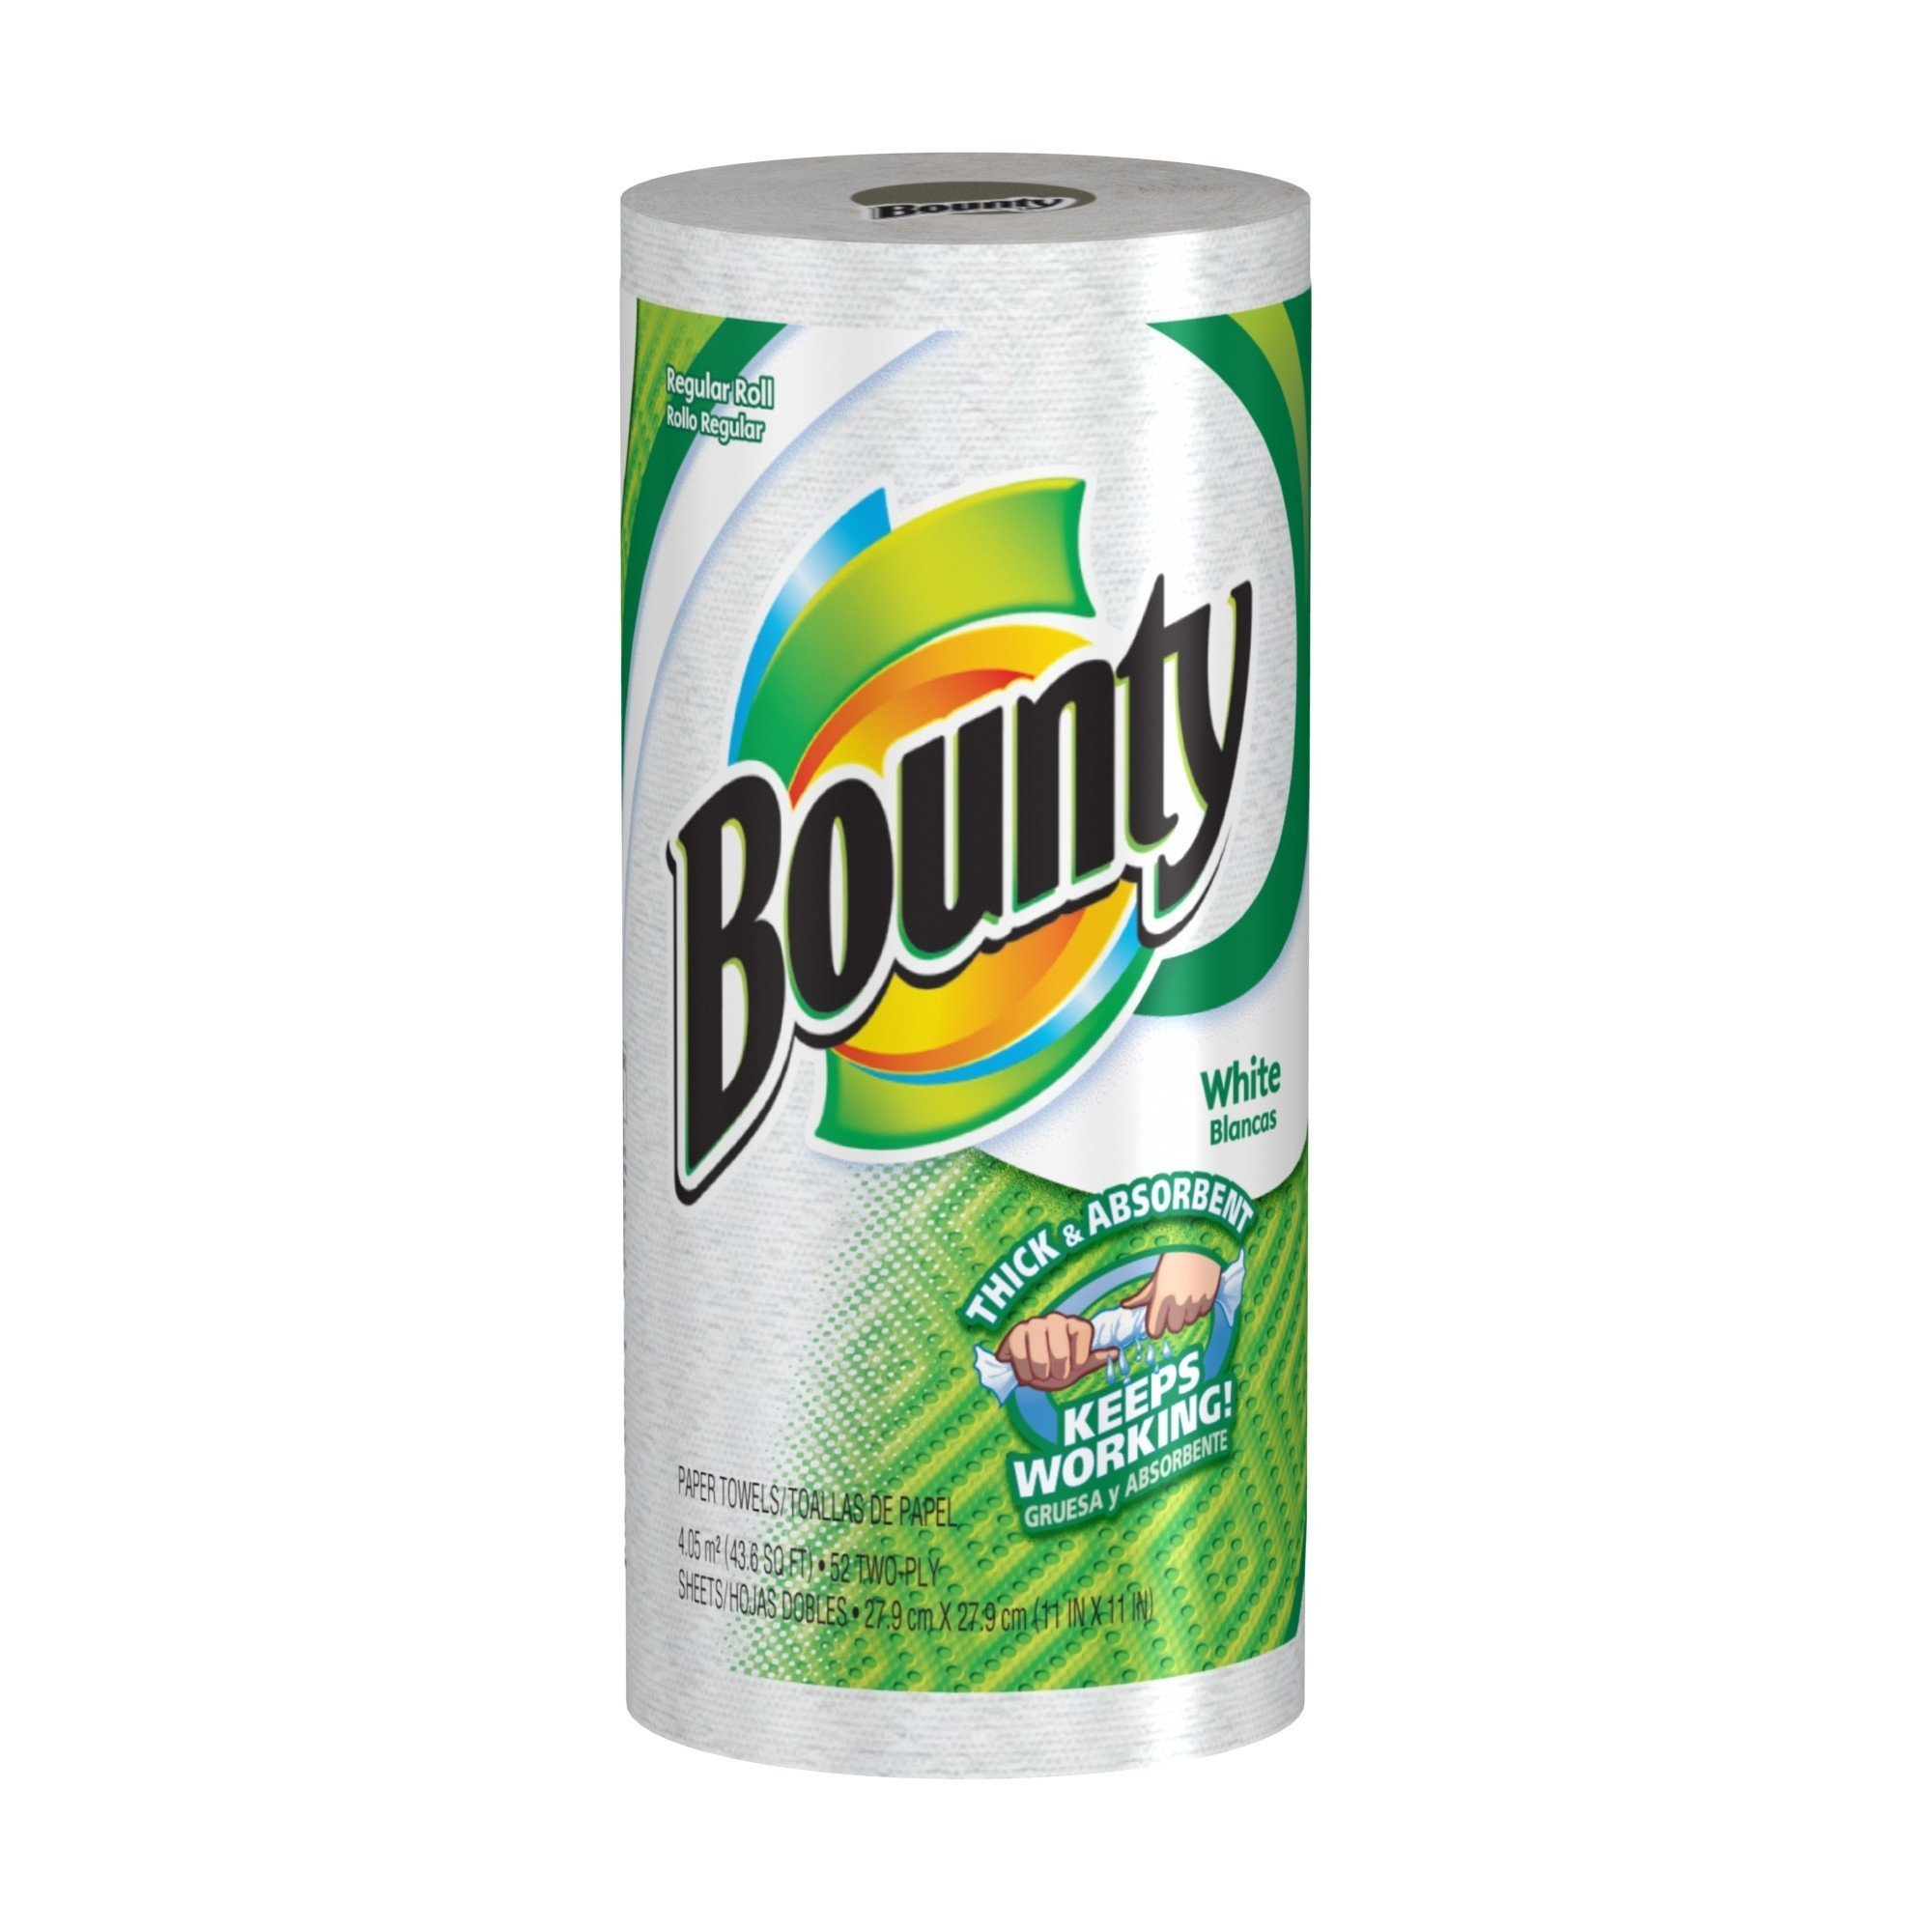 Amazon.com: Bounty Paper Towels, White, Regular Roll (Pack of 30): Health & Personal Care